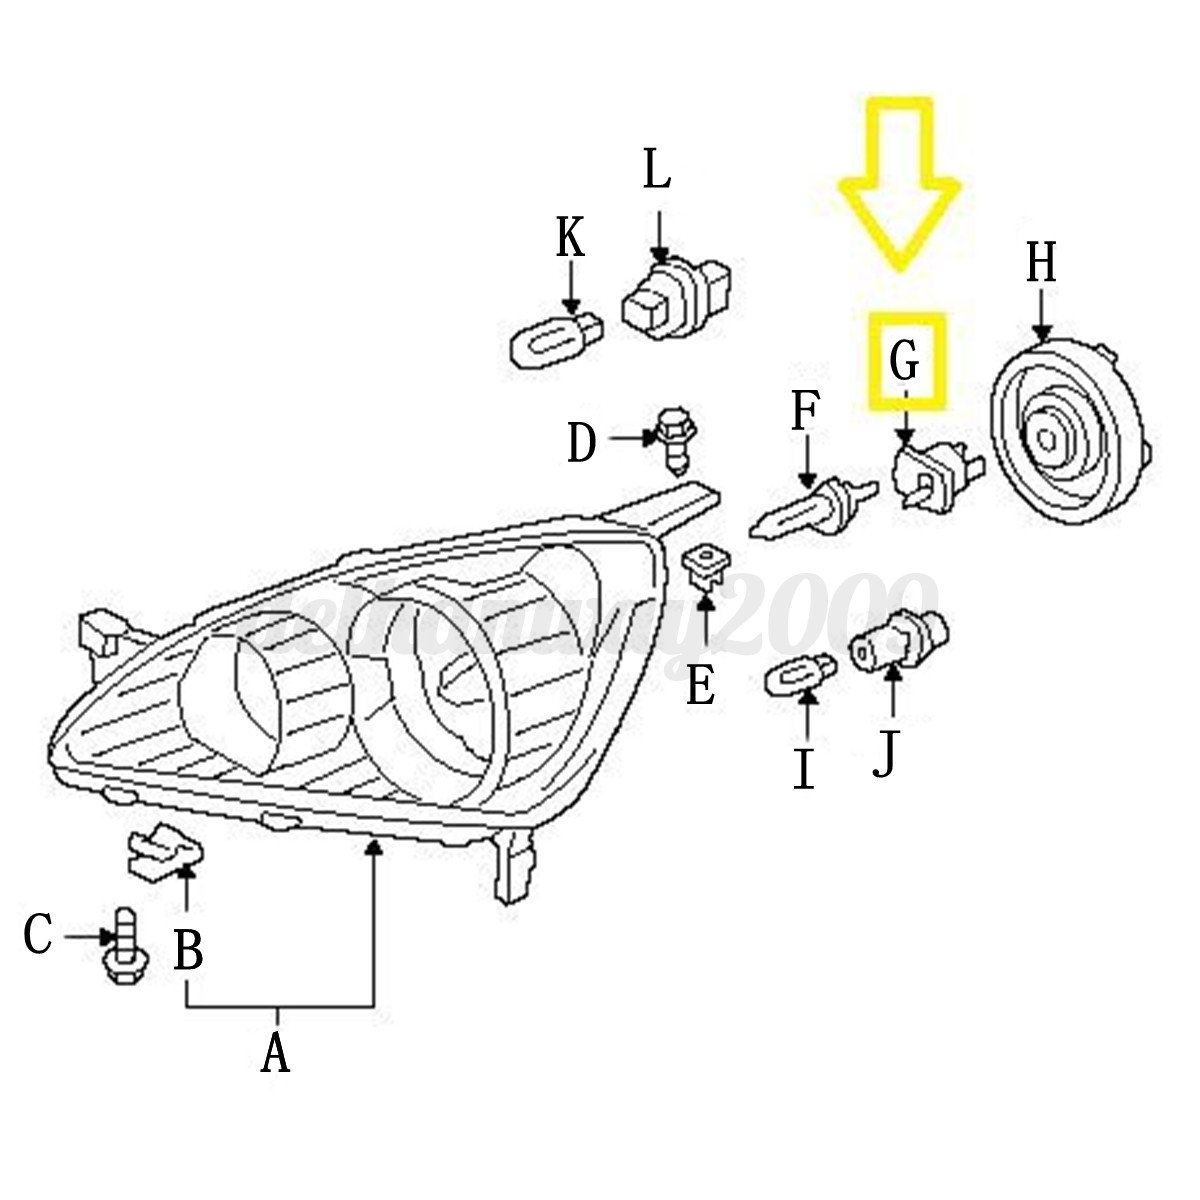 Top Of Engine Diagram For 94 Honda Accord as well 131758217200 also Honda Civic Del Sol Fuse Box Diagrams 374429 moreover 2006 Acura Tl Battery Goes Dead additionally 182155209129. on acura rl headlight bulb replacement